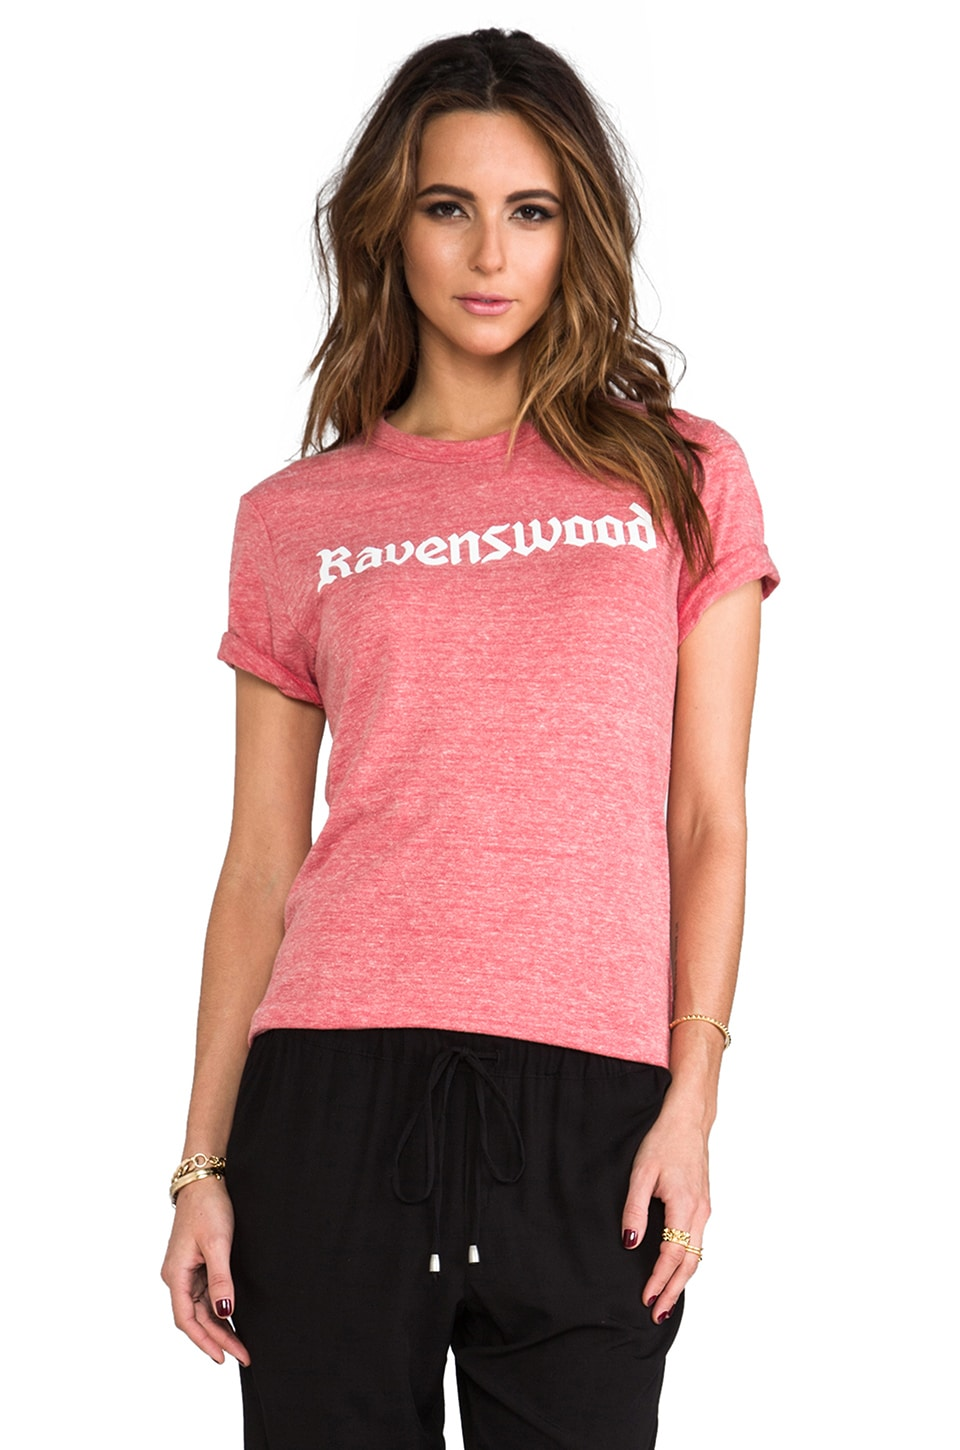 Rachel Antonoff Rosewood Short Sleeve T-shirt in Heathered Red